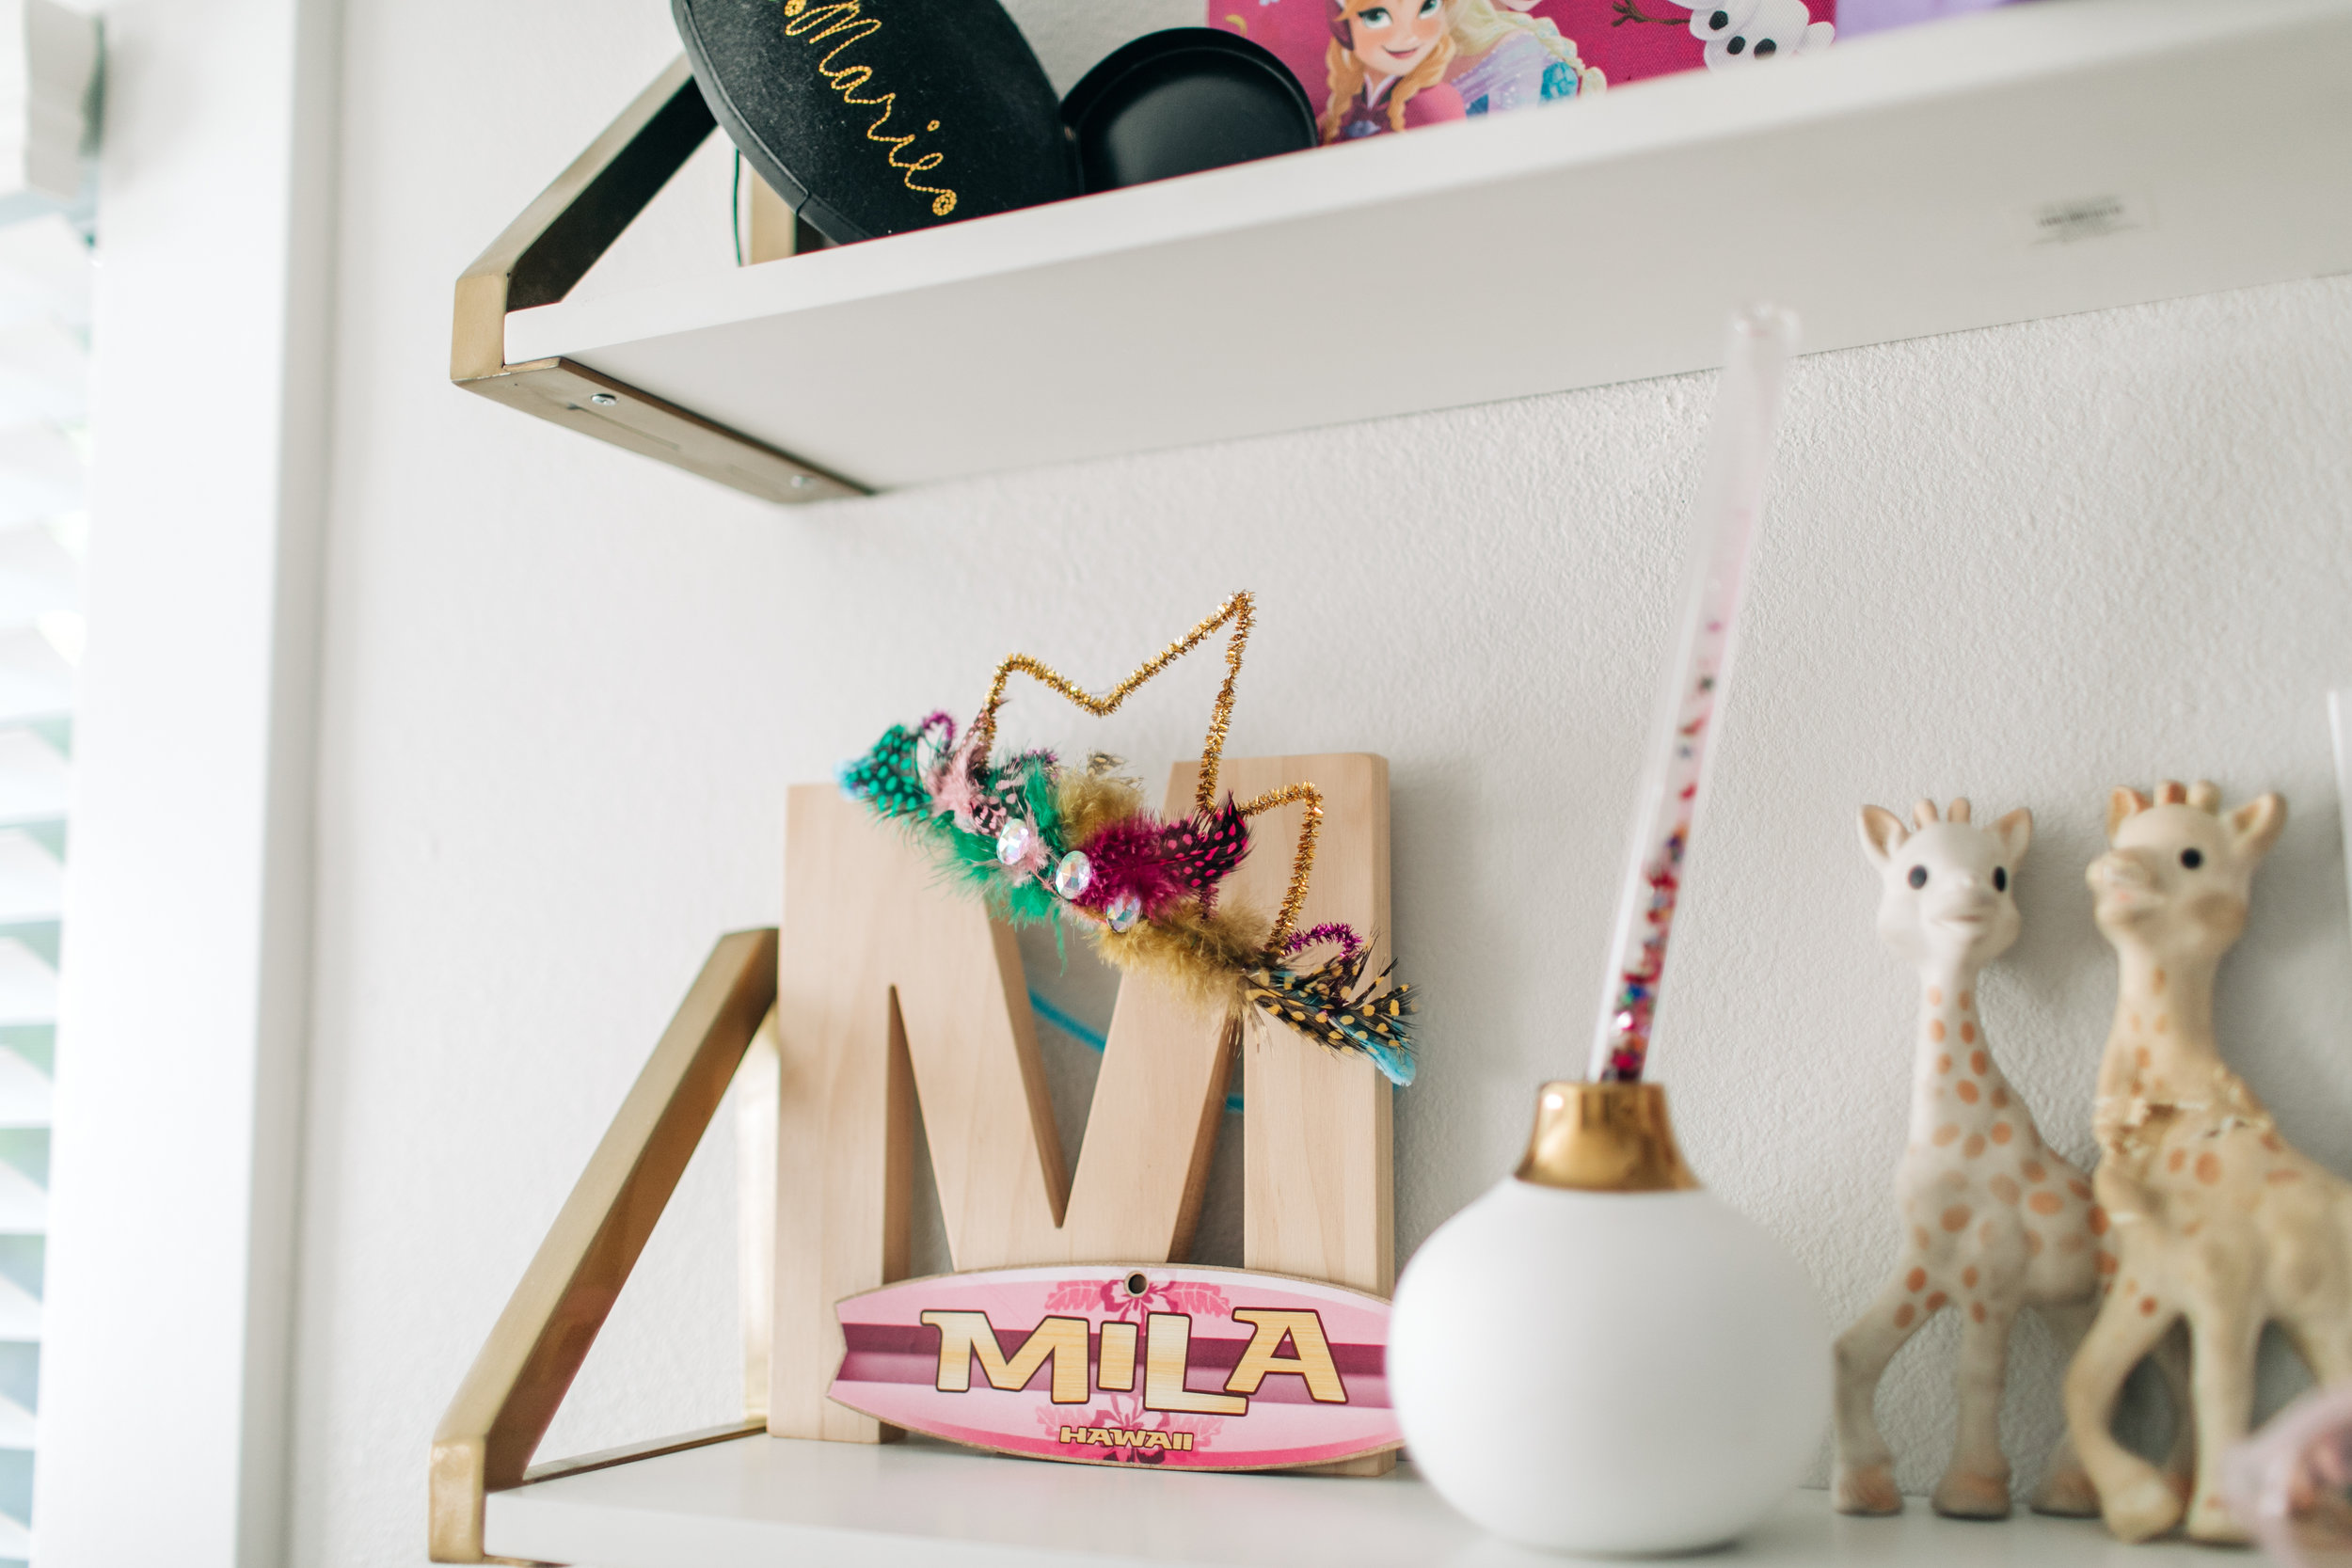 That pipe cleaner crown was from a craft shoot we did for our blog last year. The surfboard Mila name tag was a gift from her Aunt.